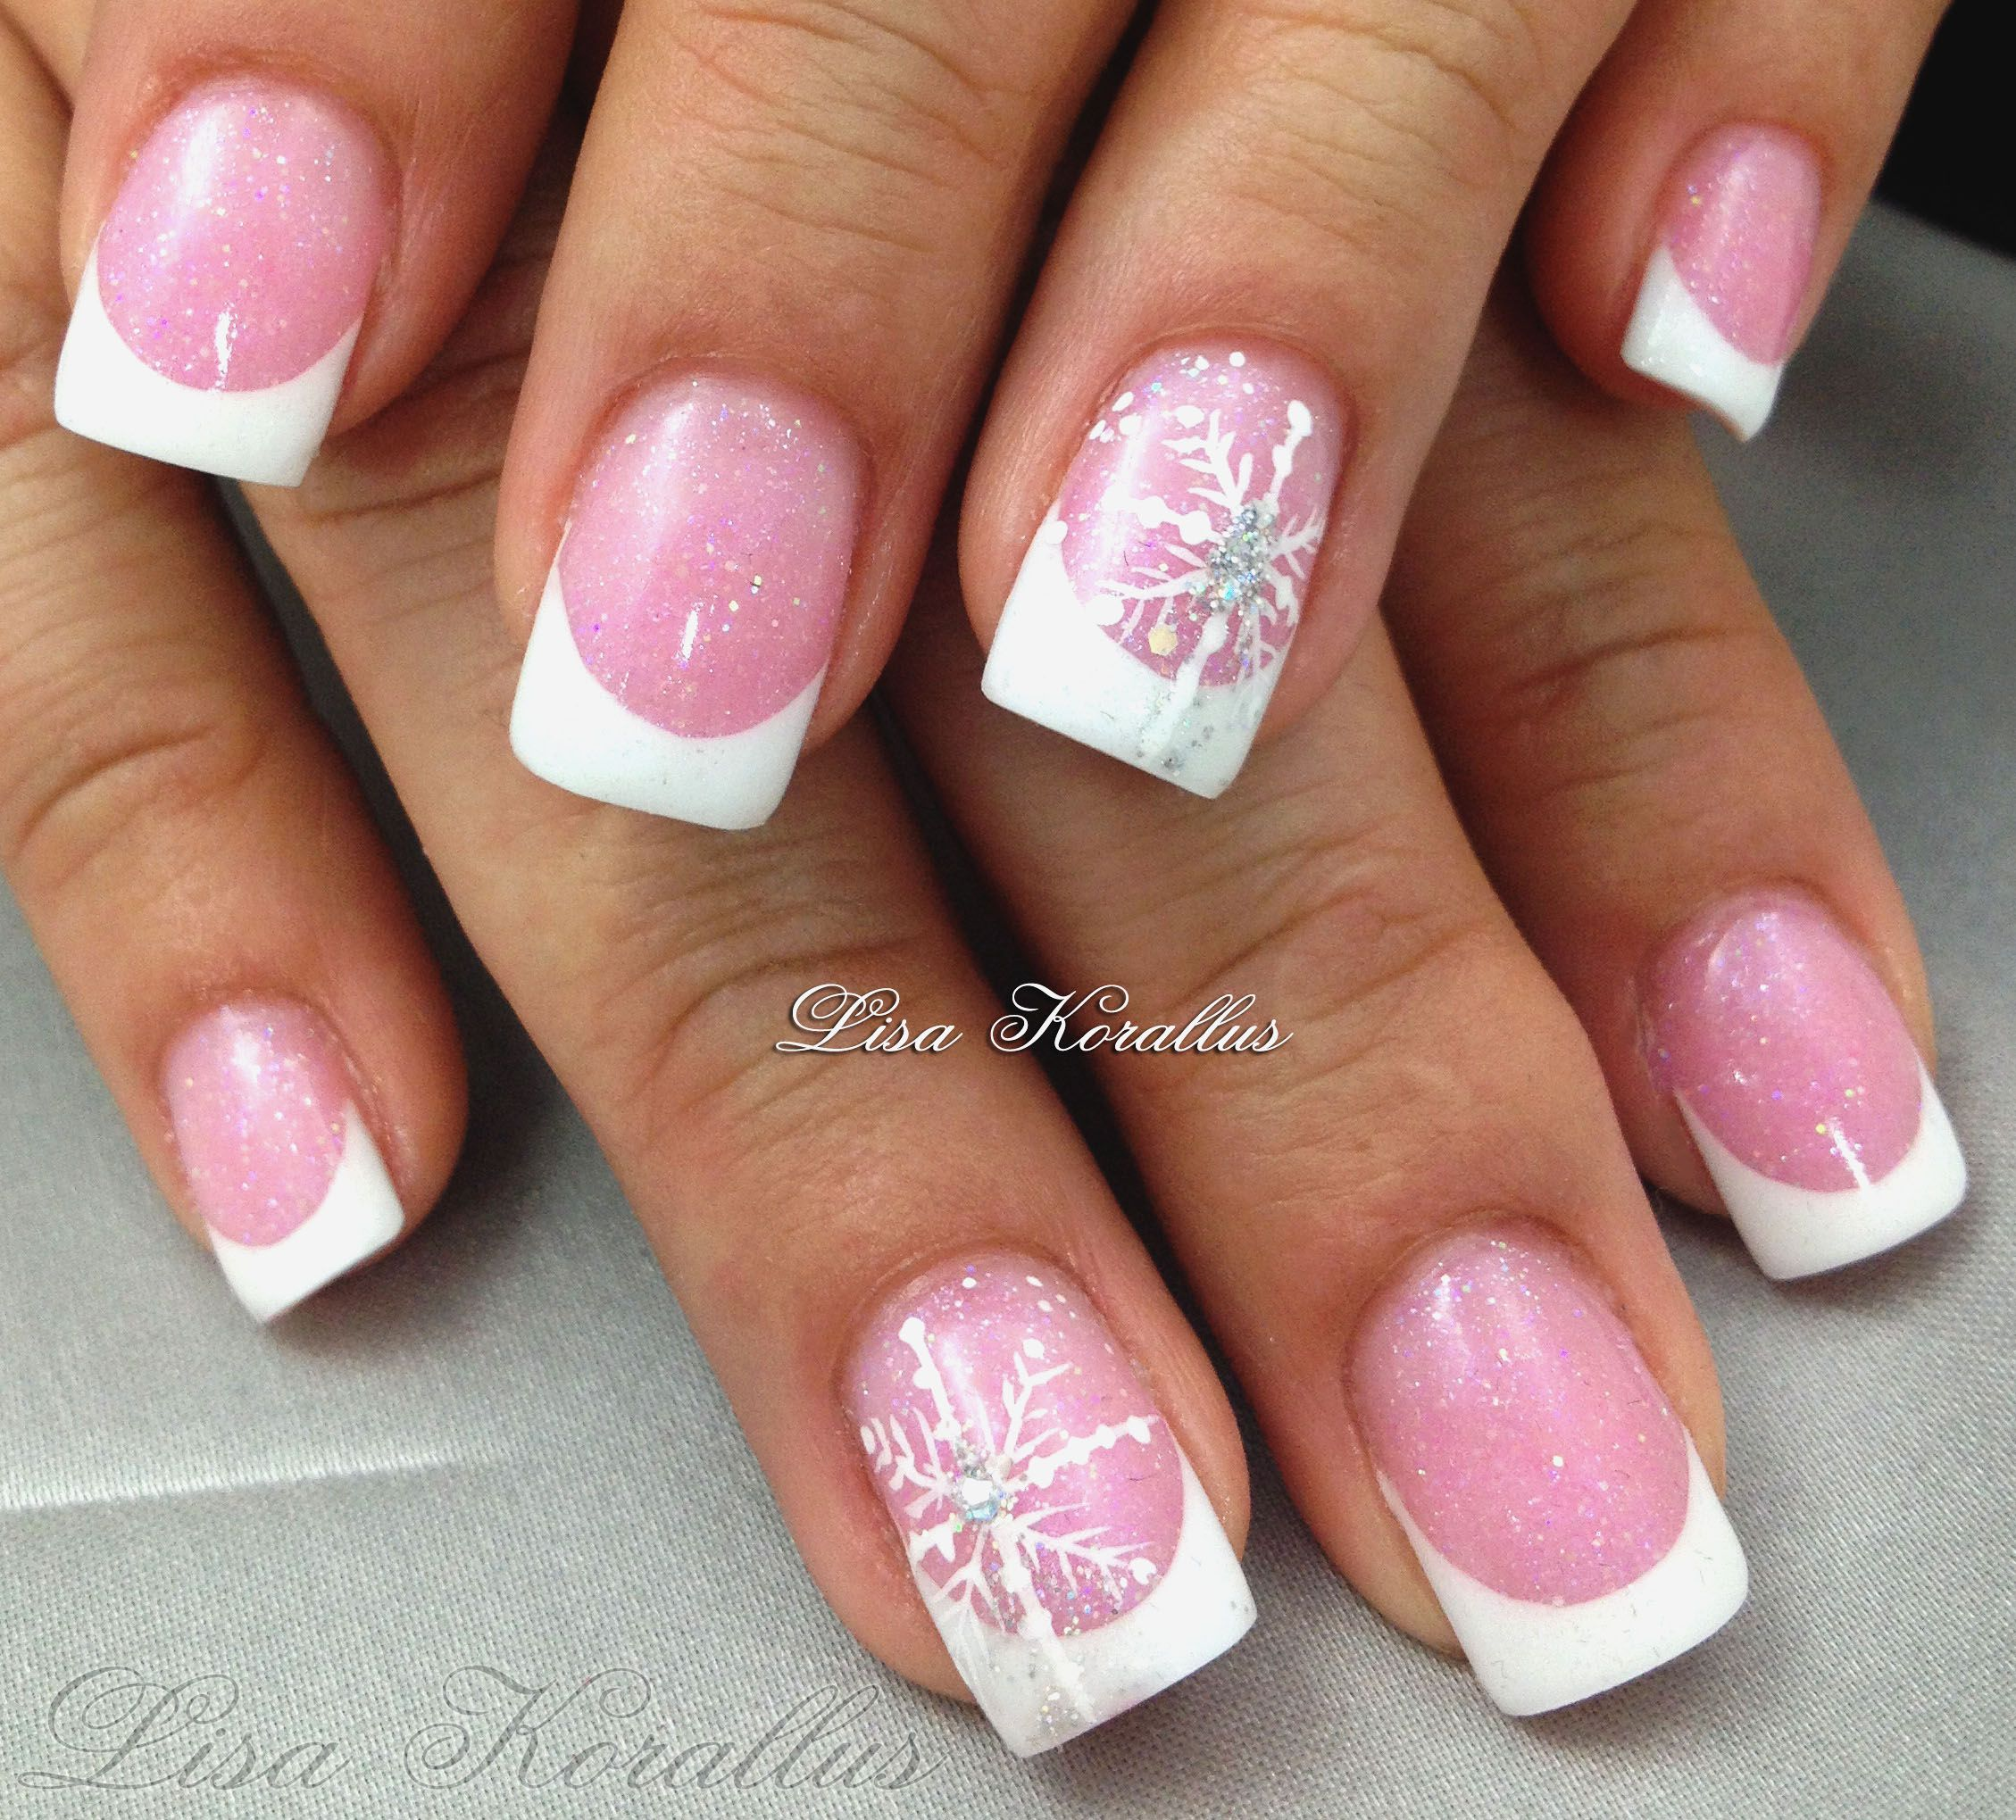 Sculpted pink and white gel enhancement with Swarovski